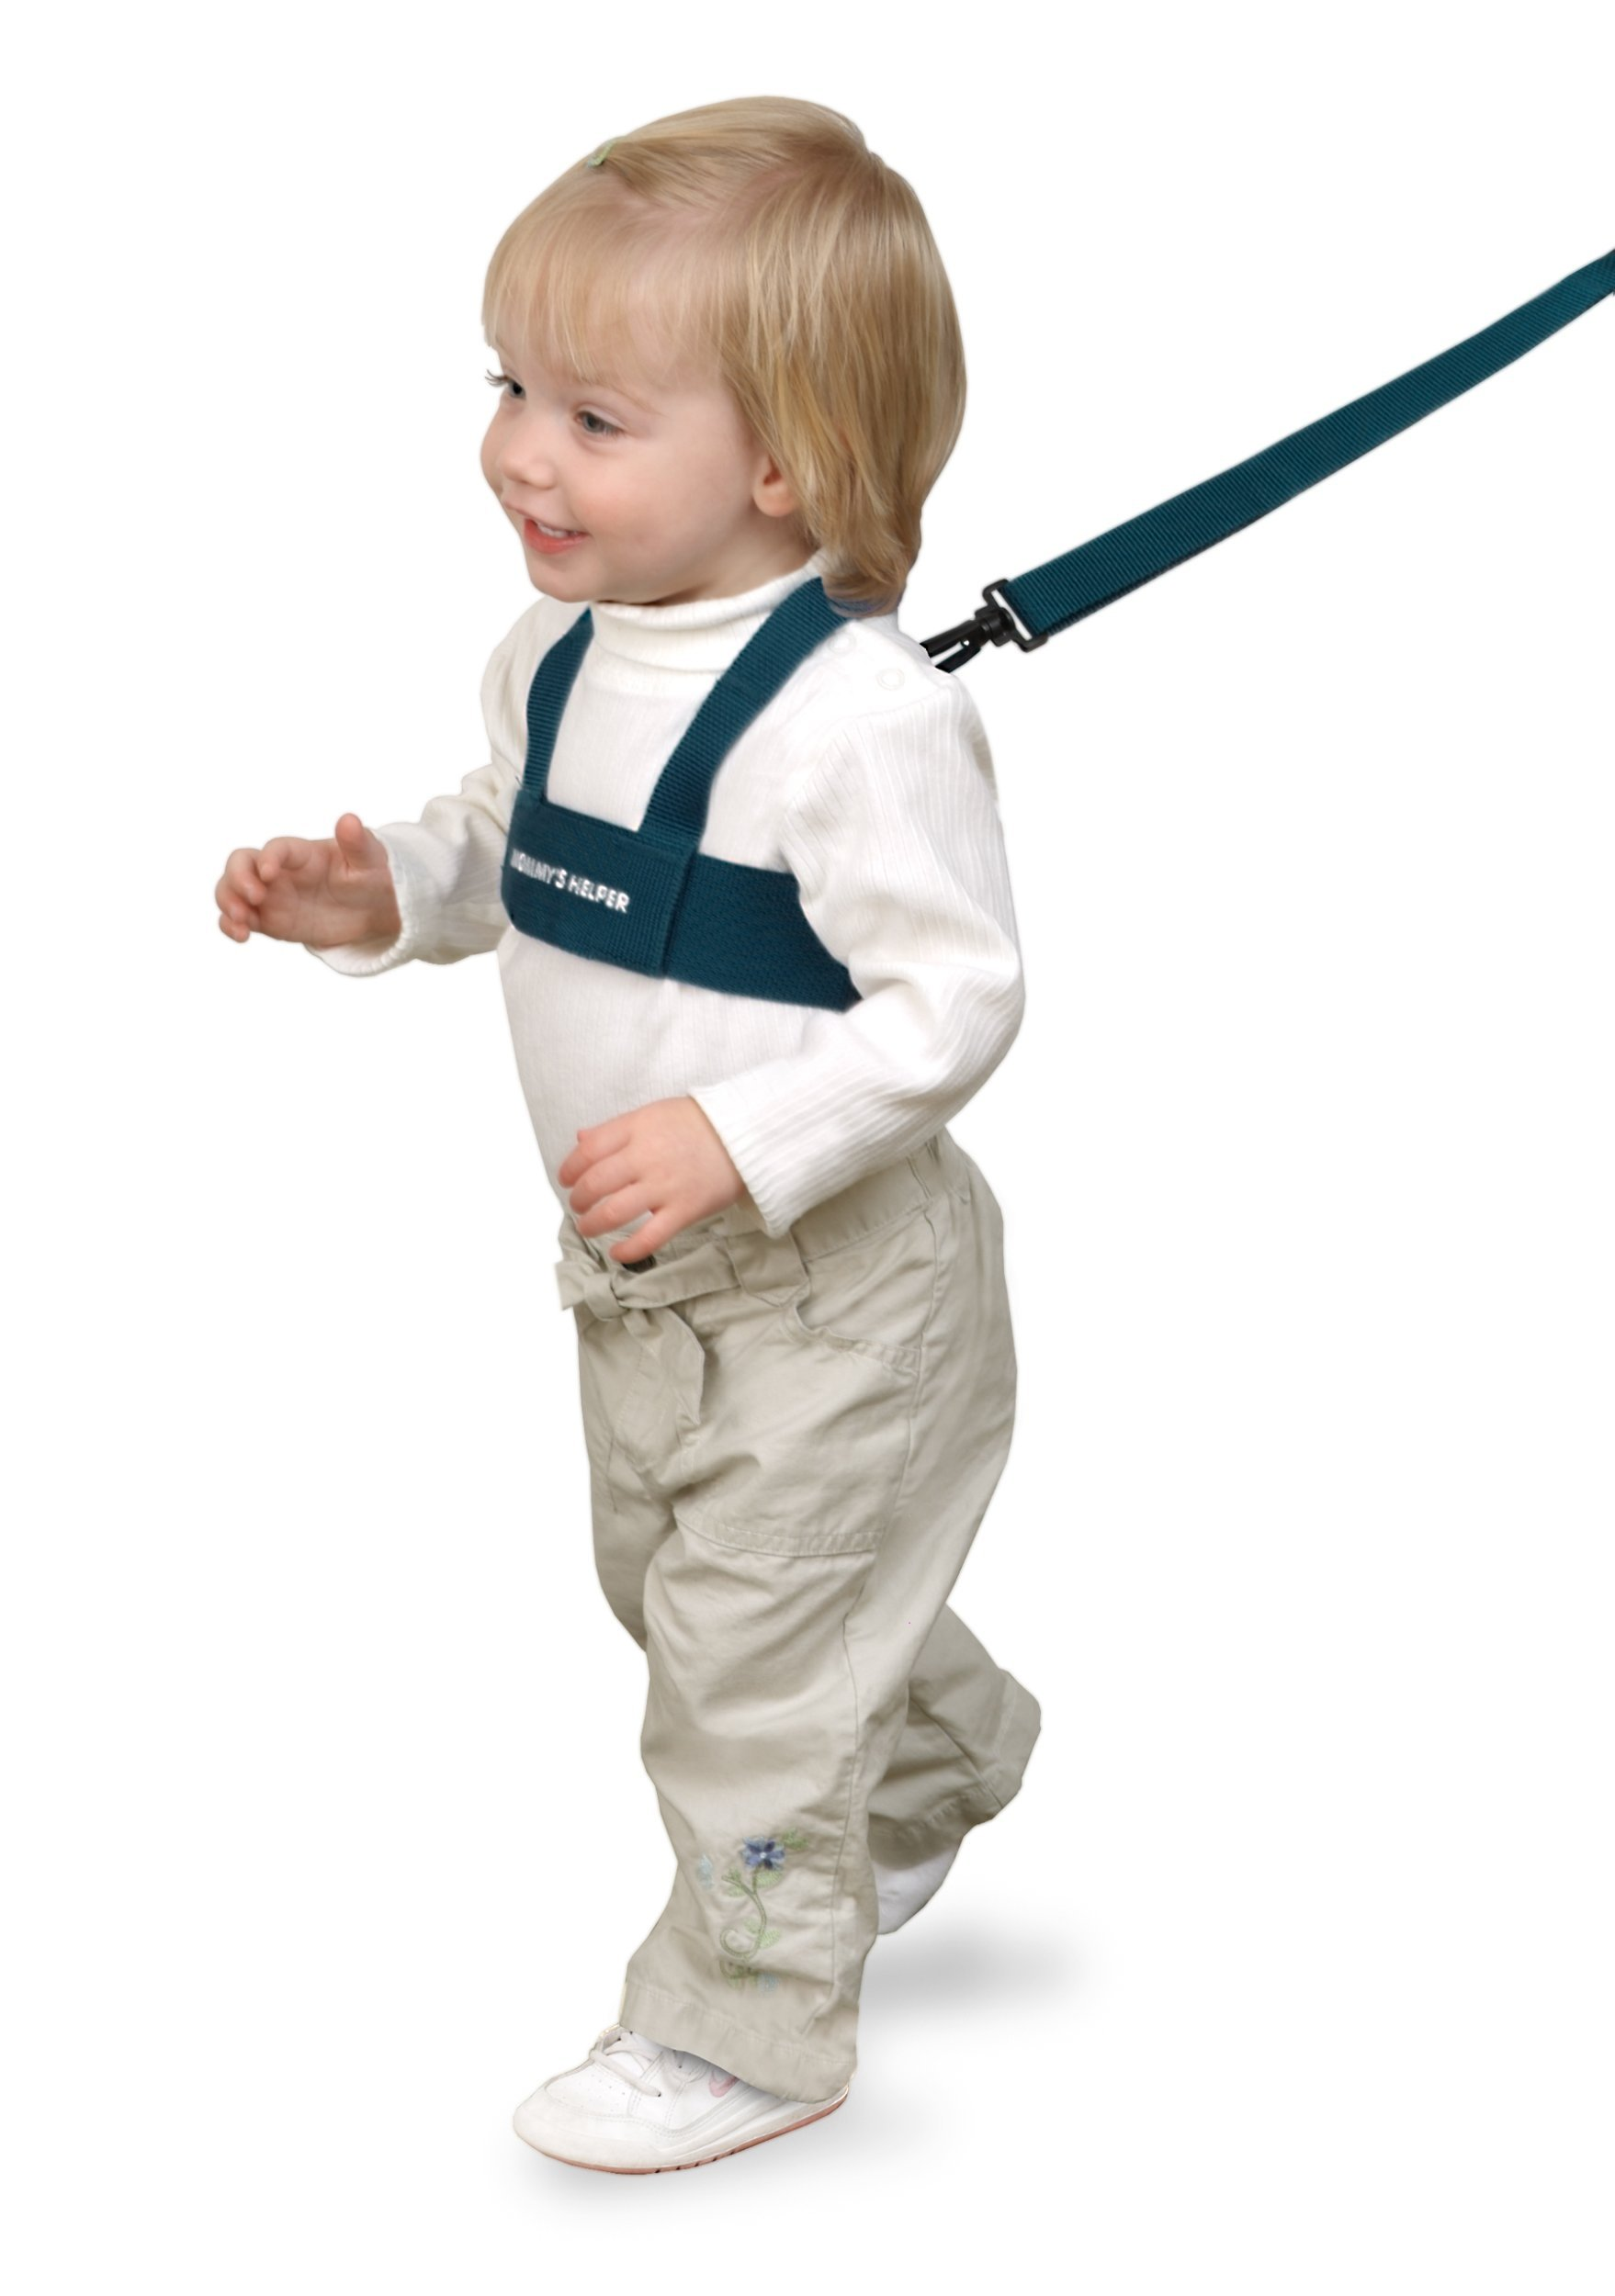 71WjsjuQfZL amazon com diono sure steps child harness, for children from 2 4